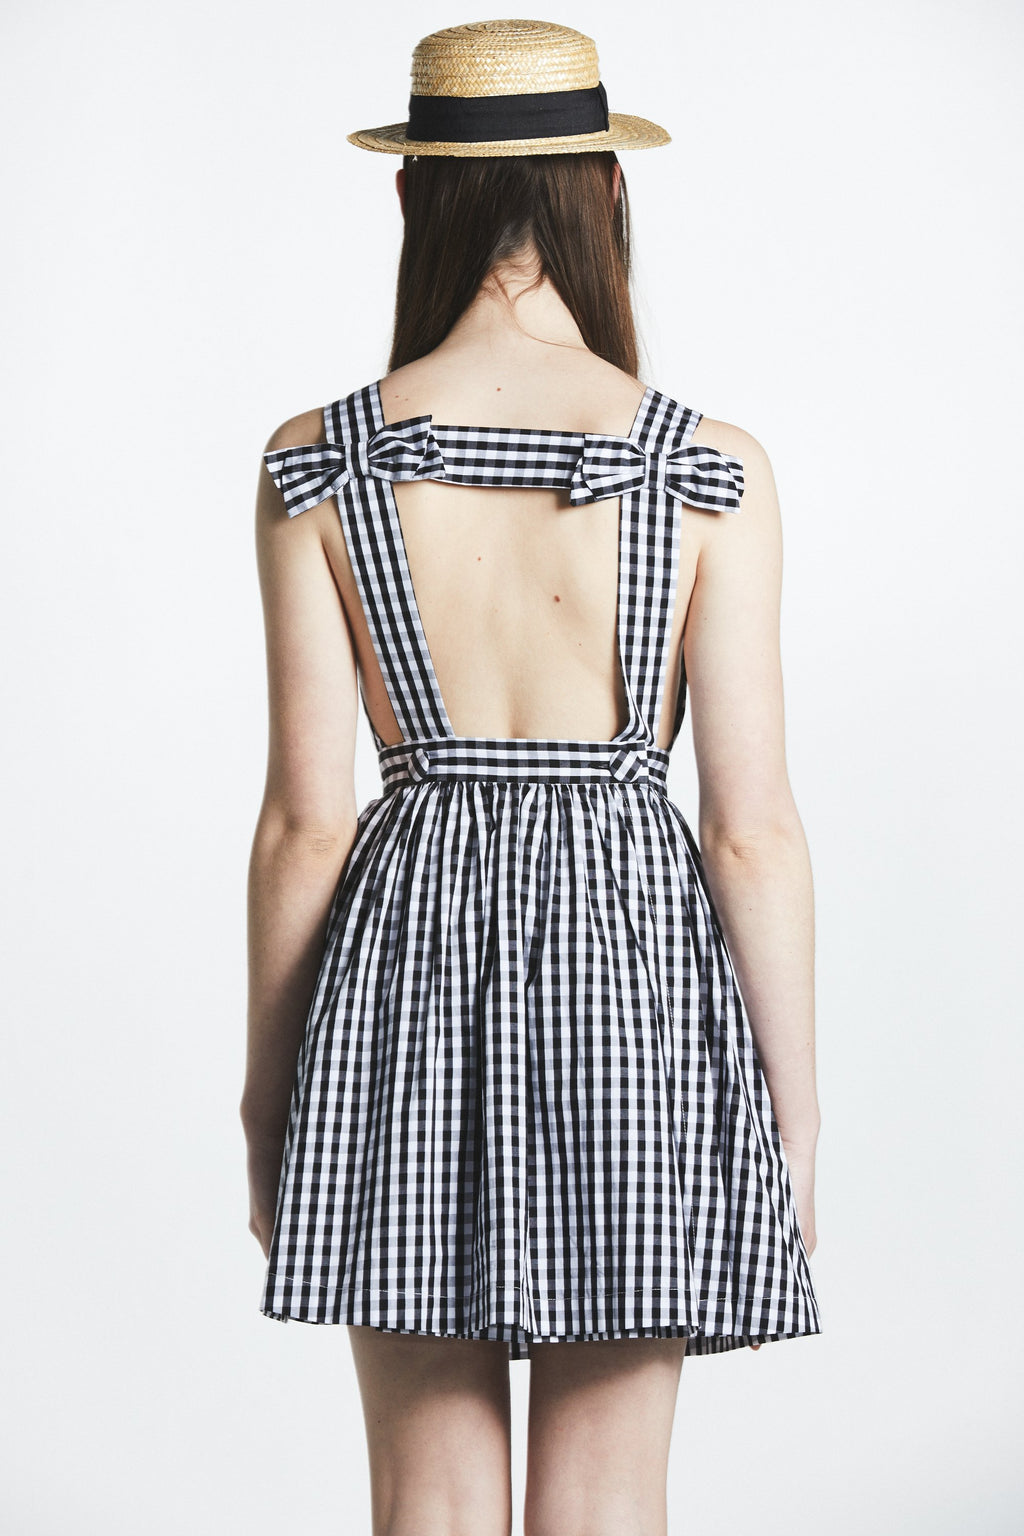 Bow Backless Gingham Dress - L'école Des Femmes